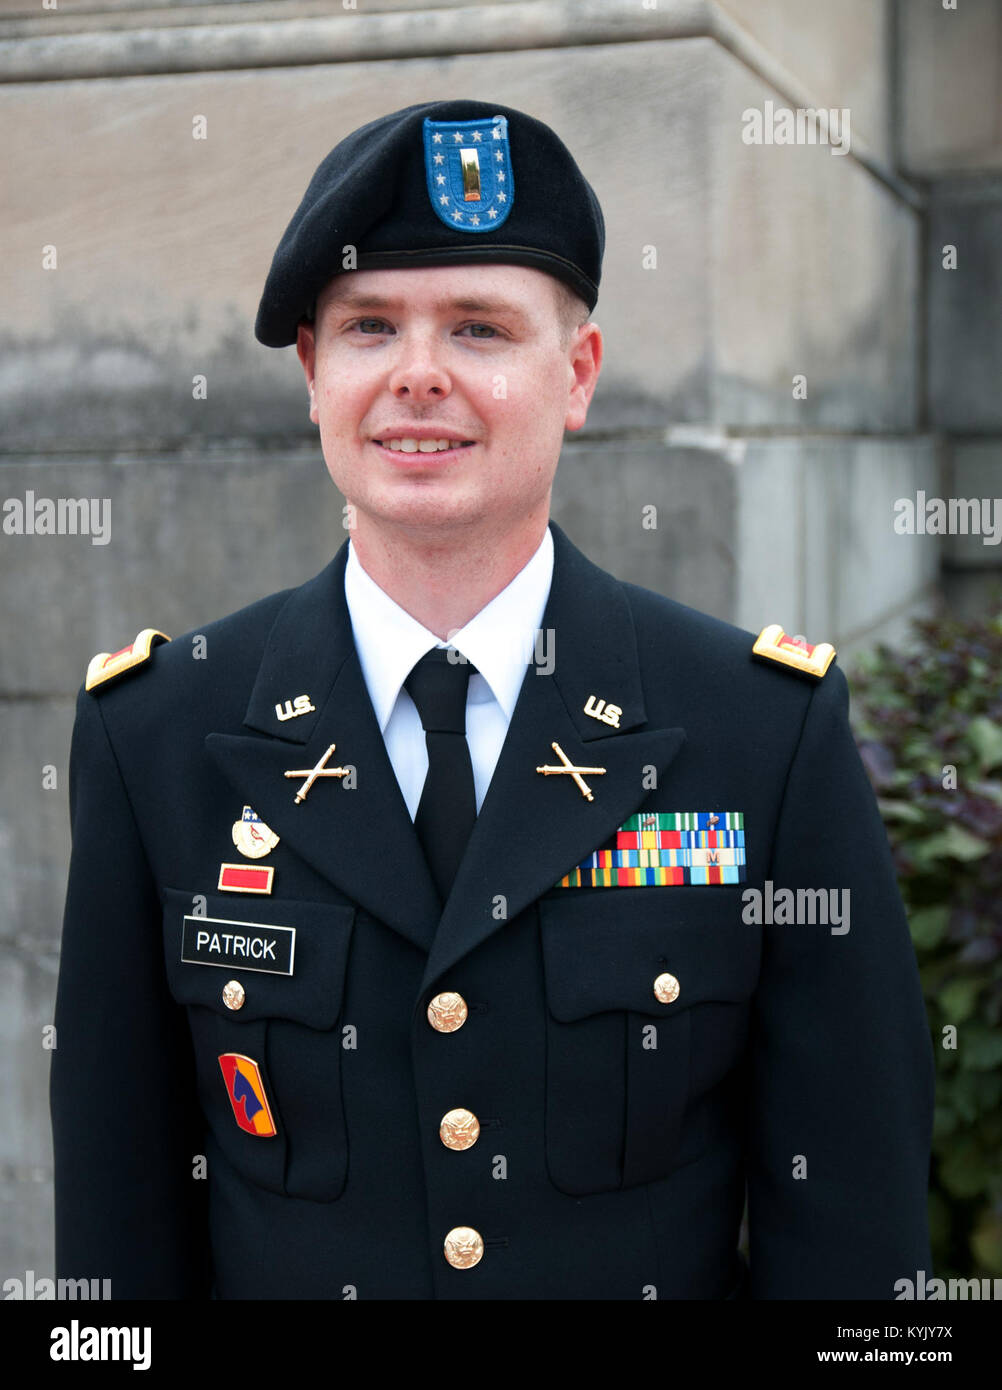 army officer candidate school essay Why i want to become an army warrant officer dear captain , the united states army is one of the main factors that allows america to be a free and democratic country the army defends, protects, and honors the united states of america.